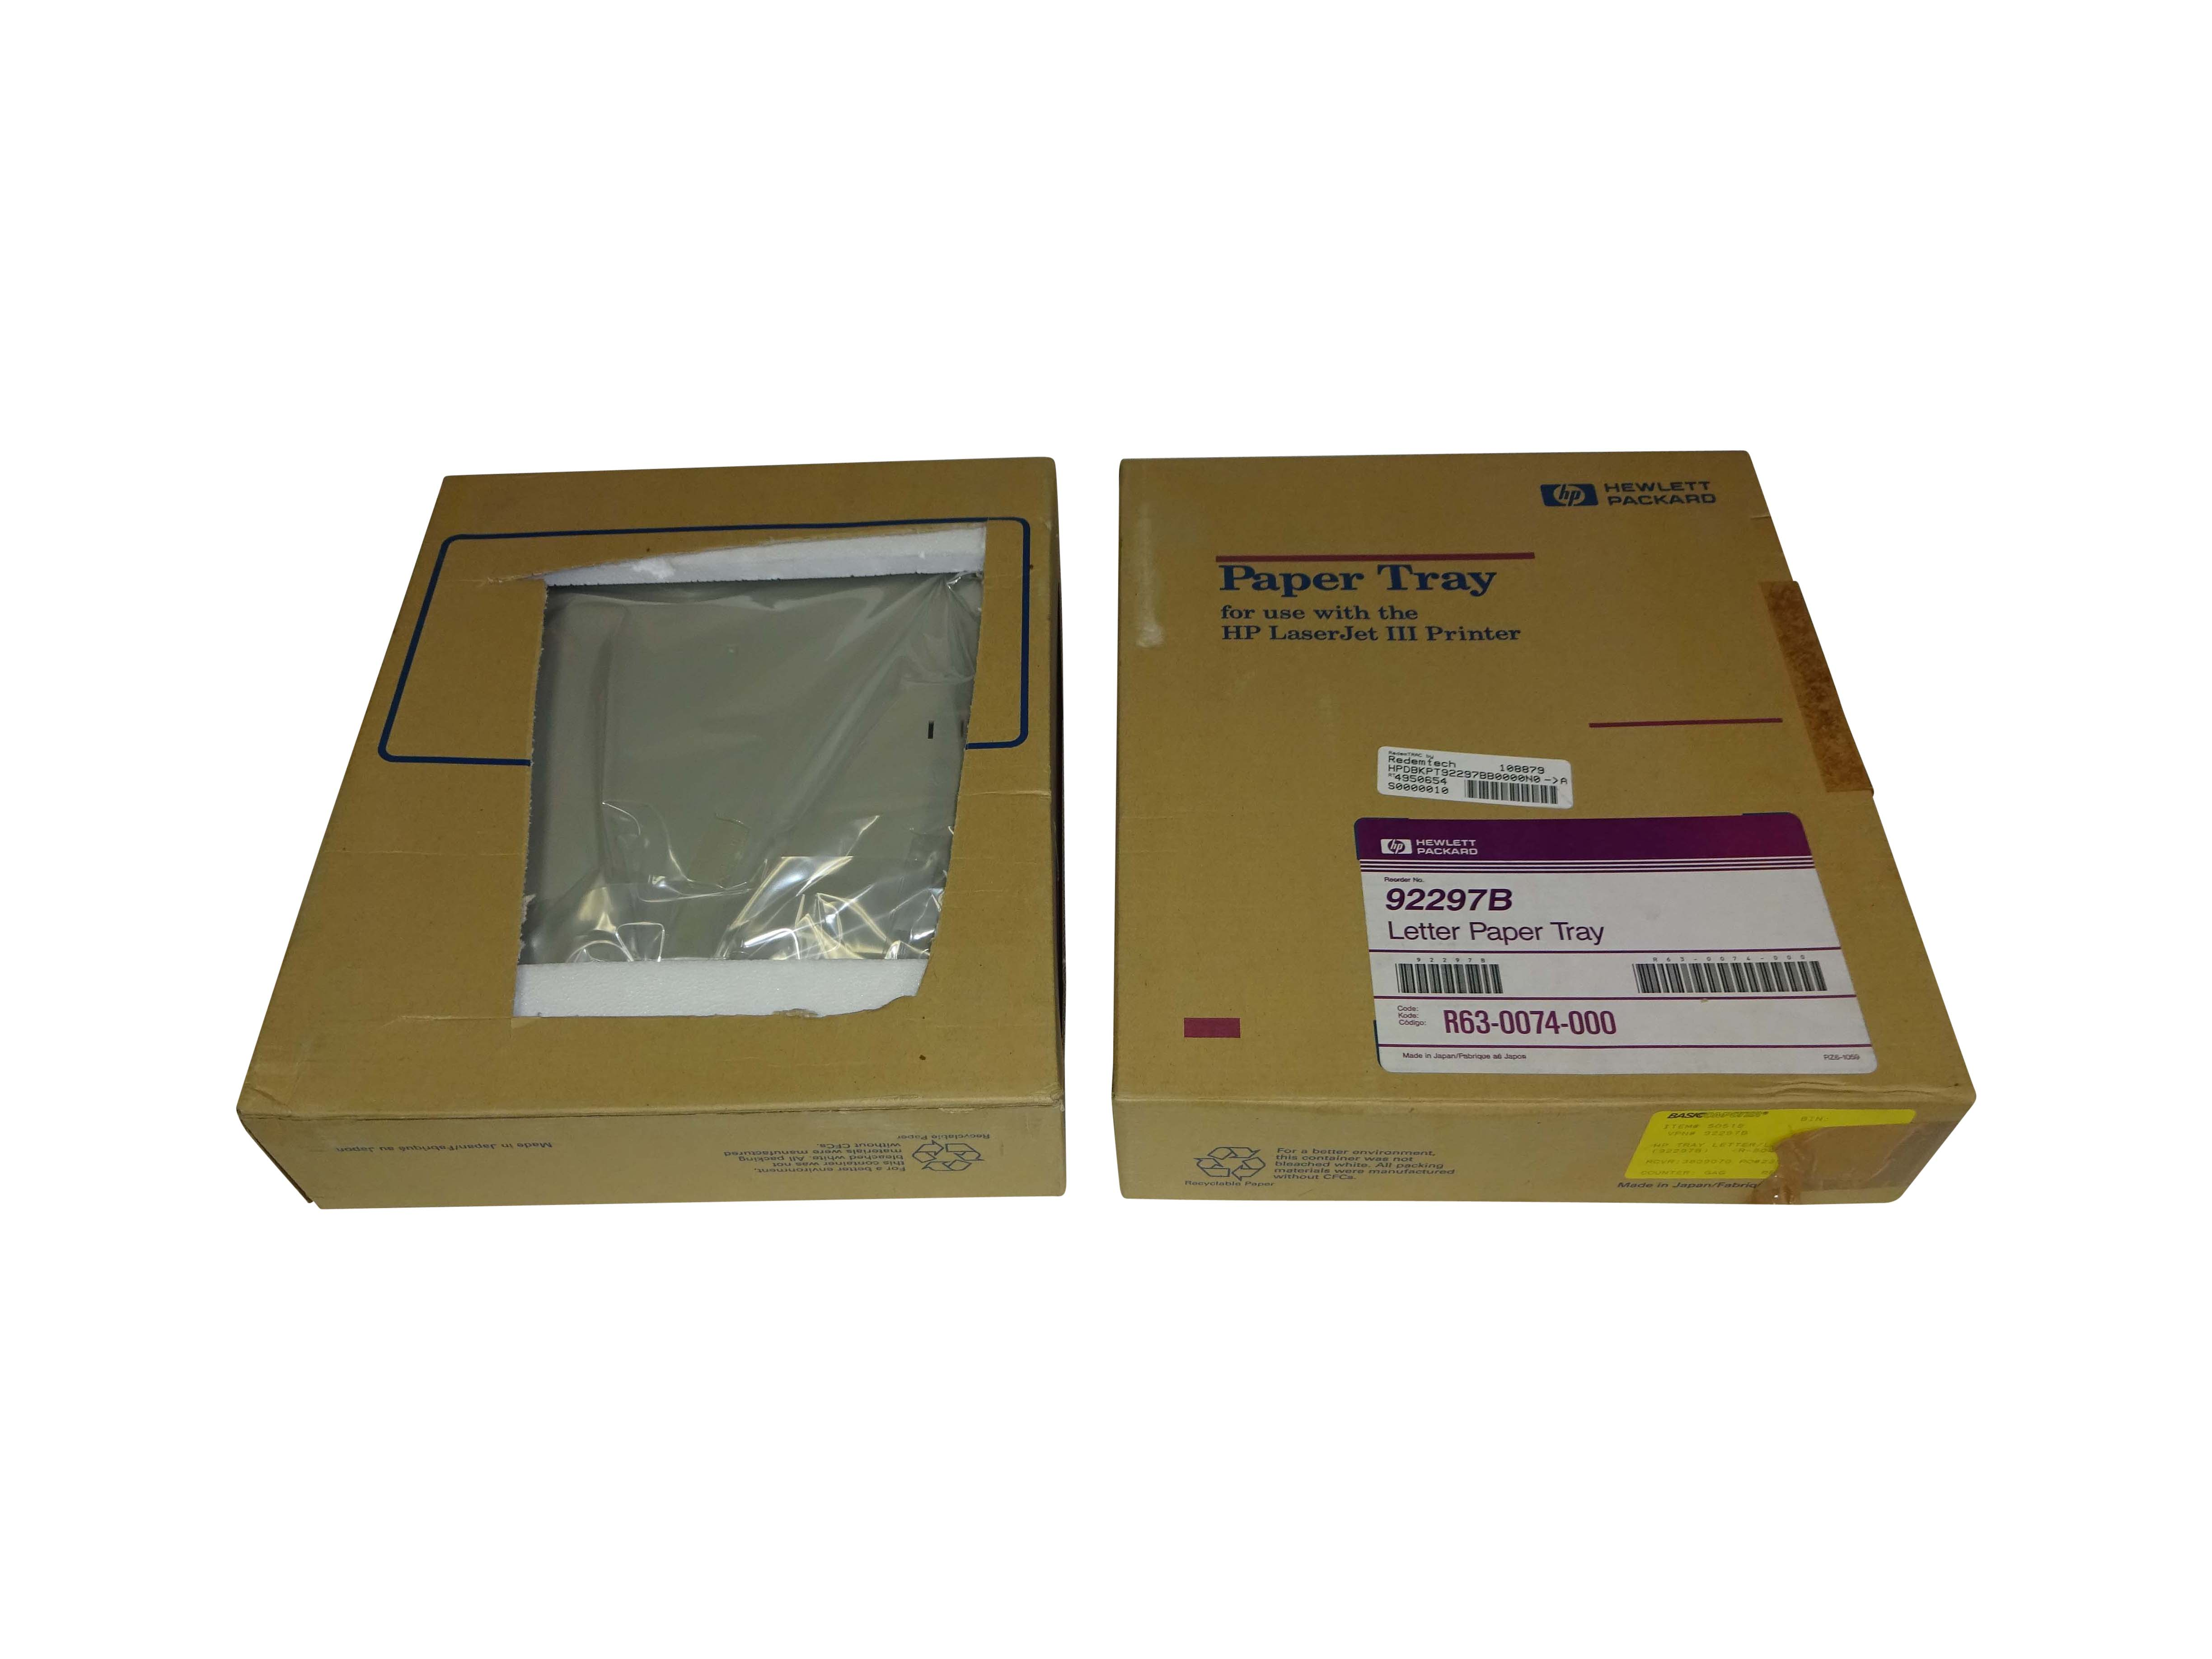 HP Letter paper tray new in box